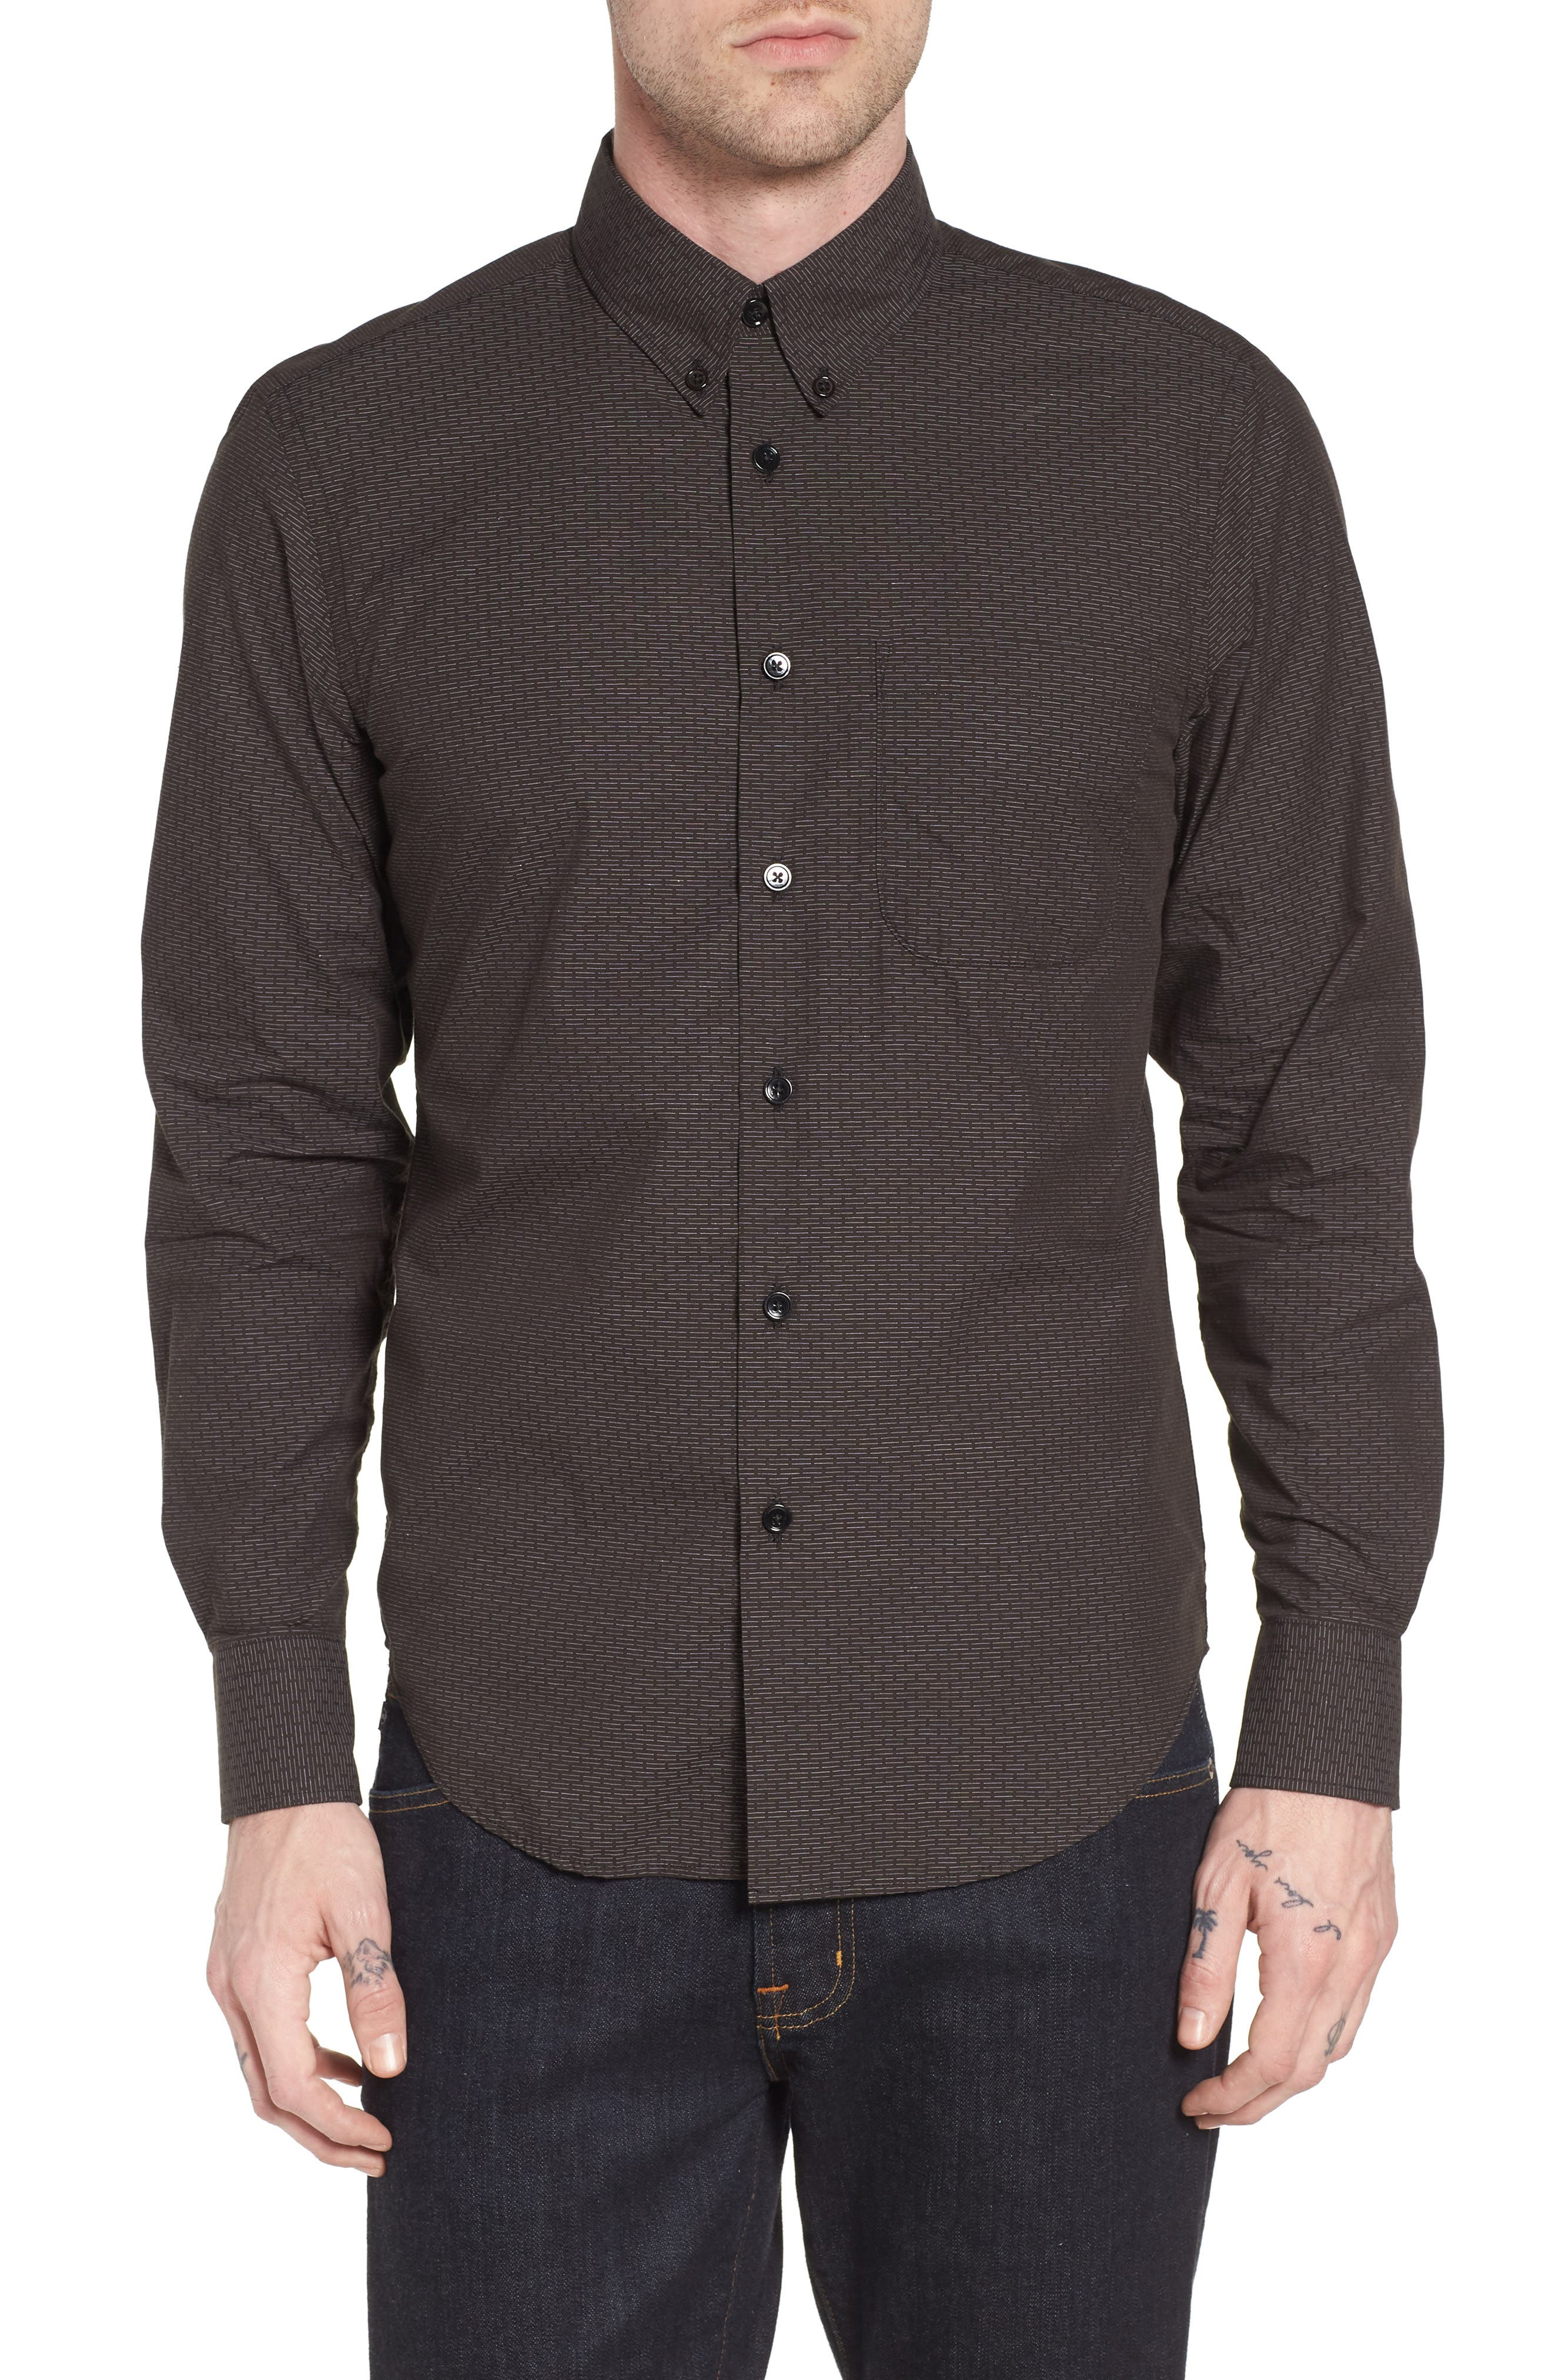 Naked & Famous Dobby Woven Shirt,                         Main,                         color, Black